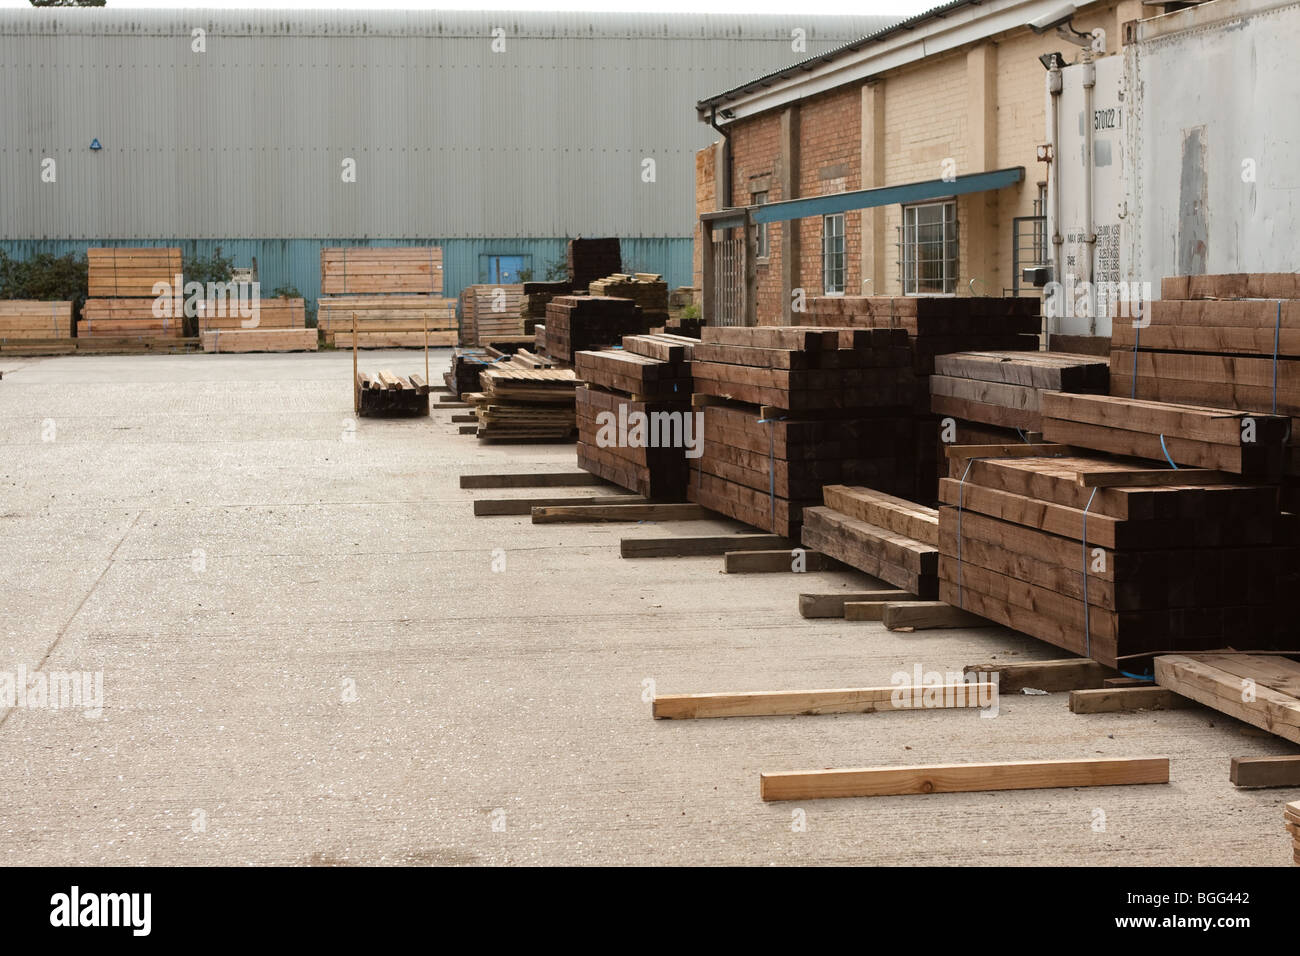 Timber yard, UK - Stock Image